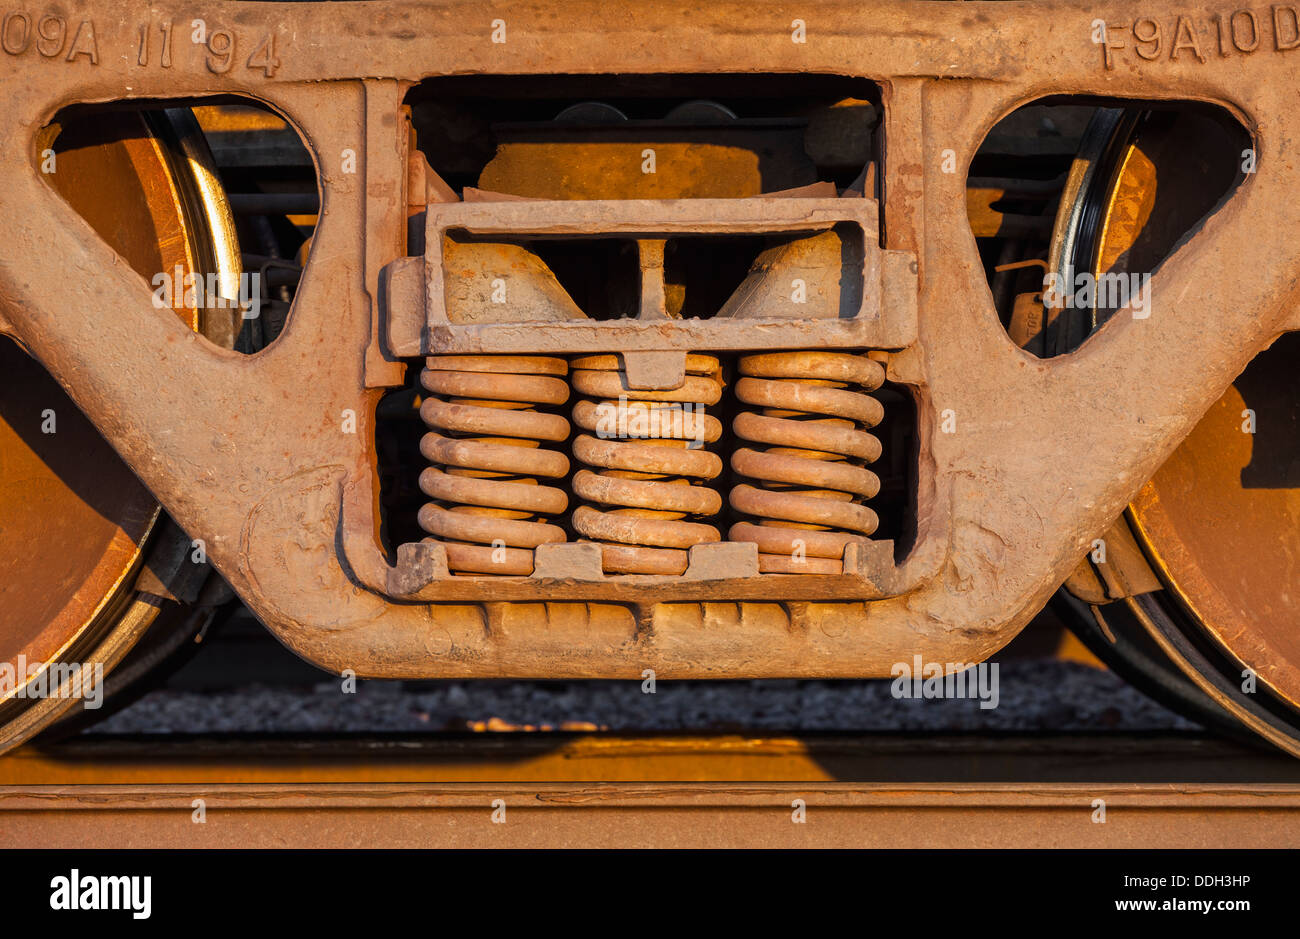 Wheels And Springs Of Freight Train Boxcar On Railroad Tracks